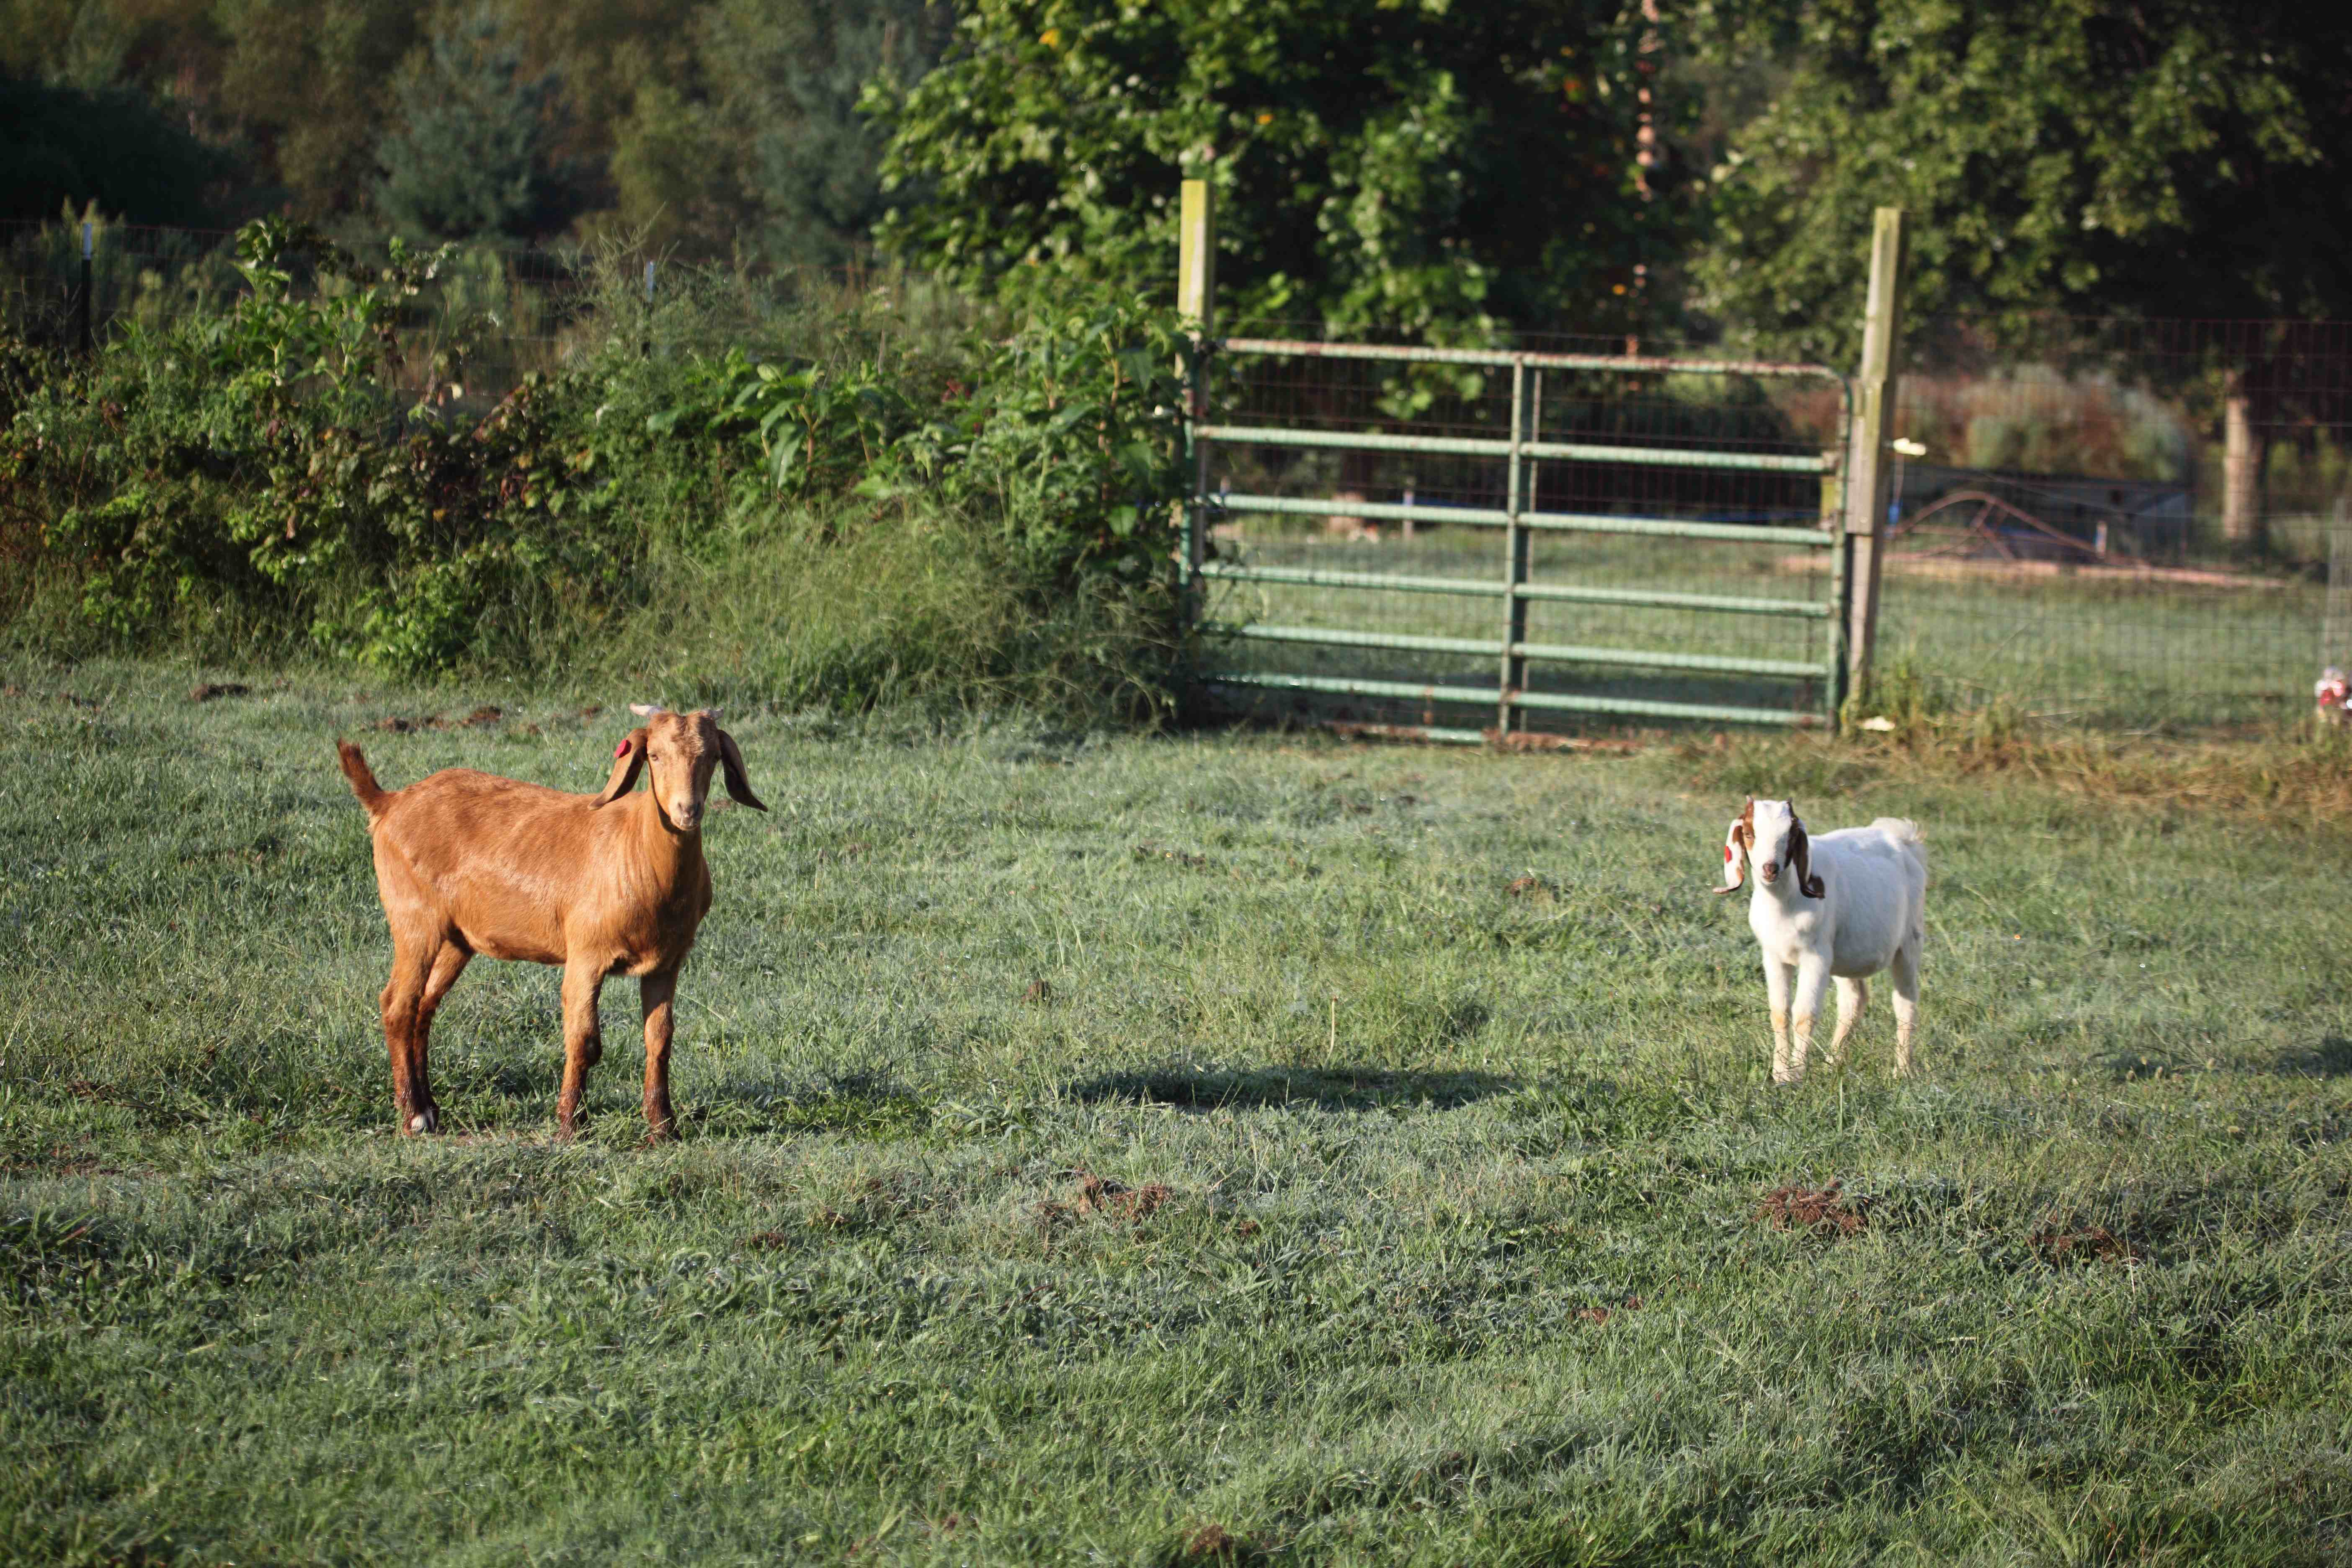 the pair of goats grazes and explores the backyard